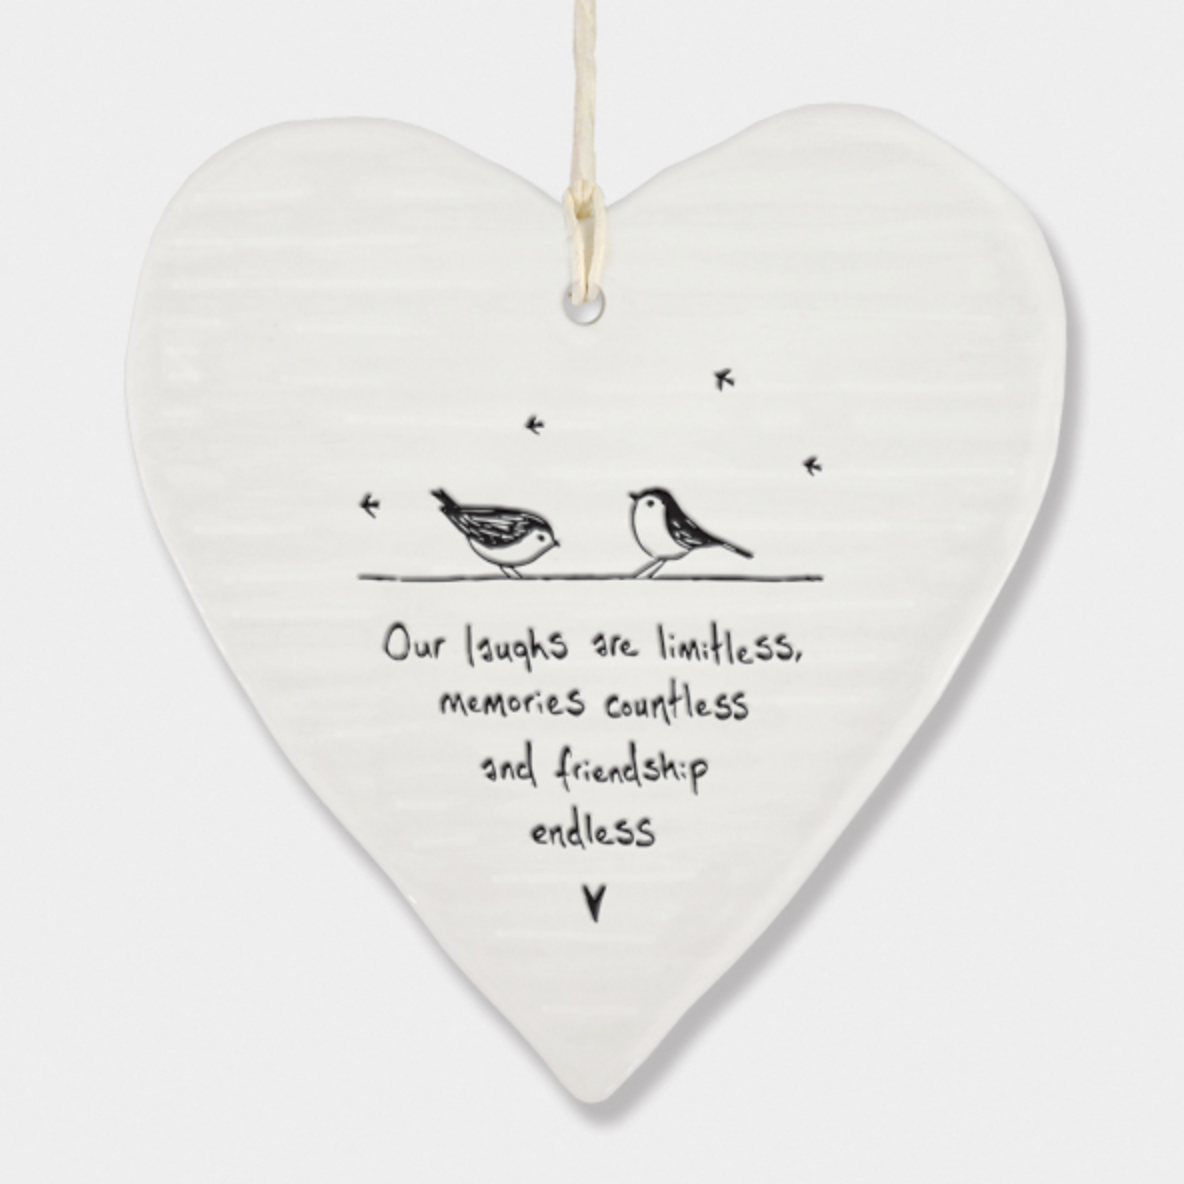 East of India Porcelain Hanging Heart -Our laughs are limitless, memories countless....